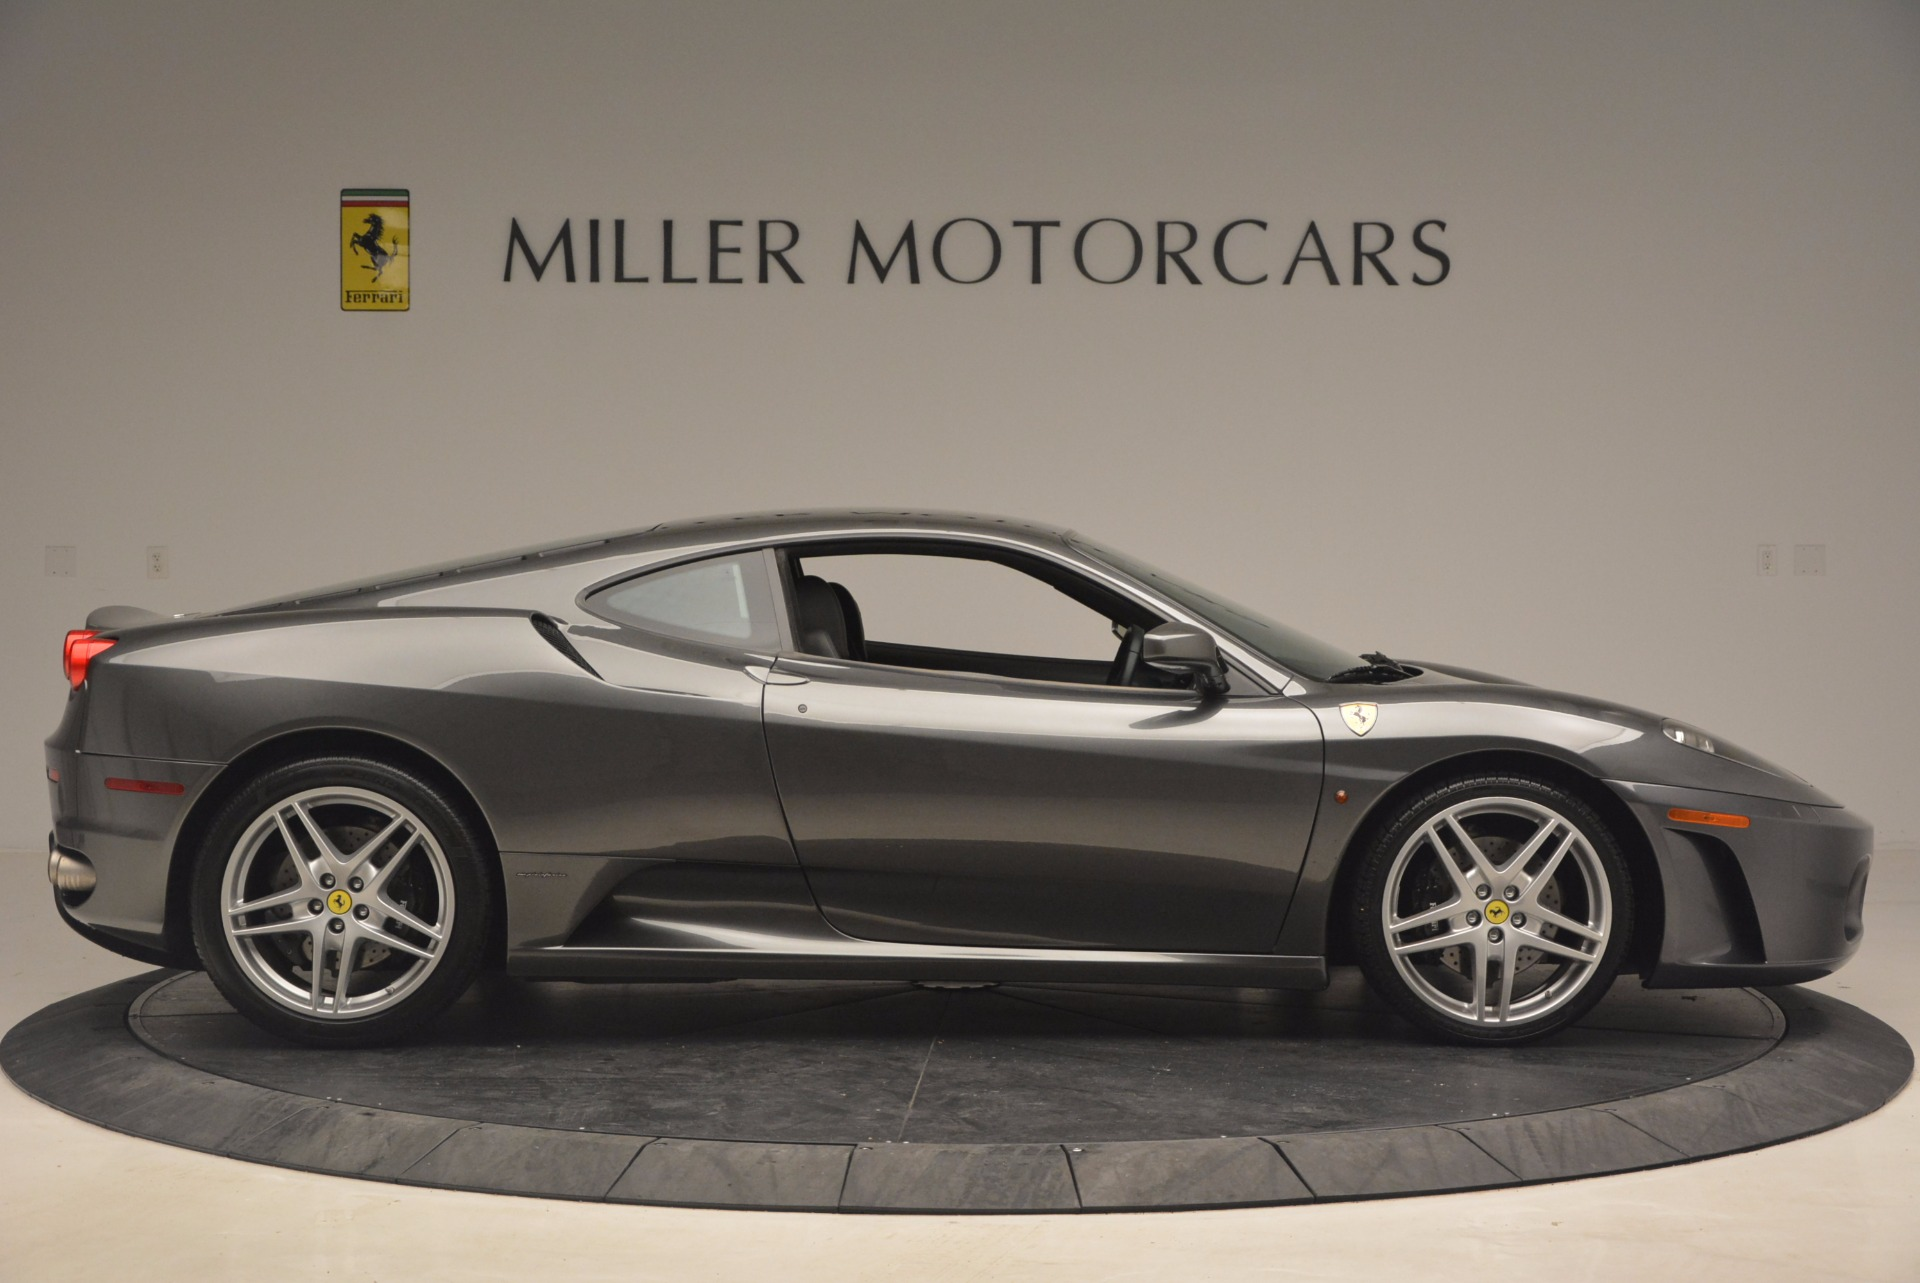 Used 2005 Ferrari F430 6-Speed Manual For Sale In Westport, CT 1286_p9